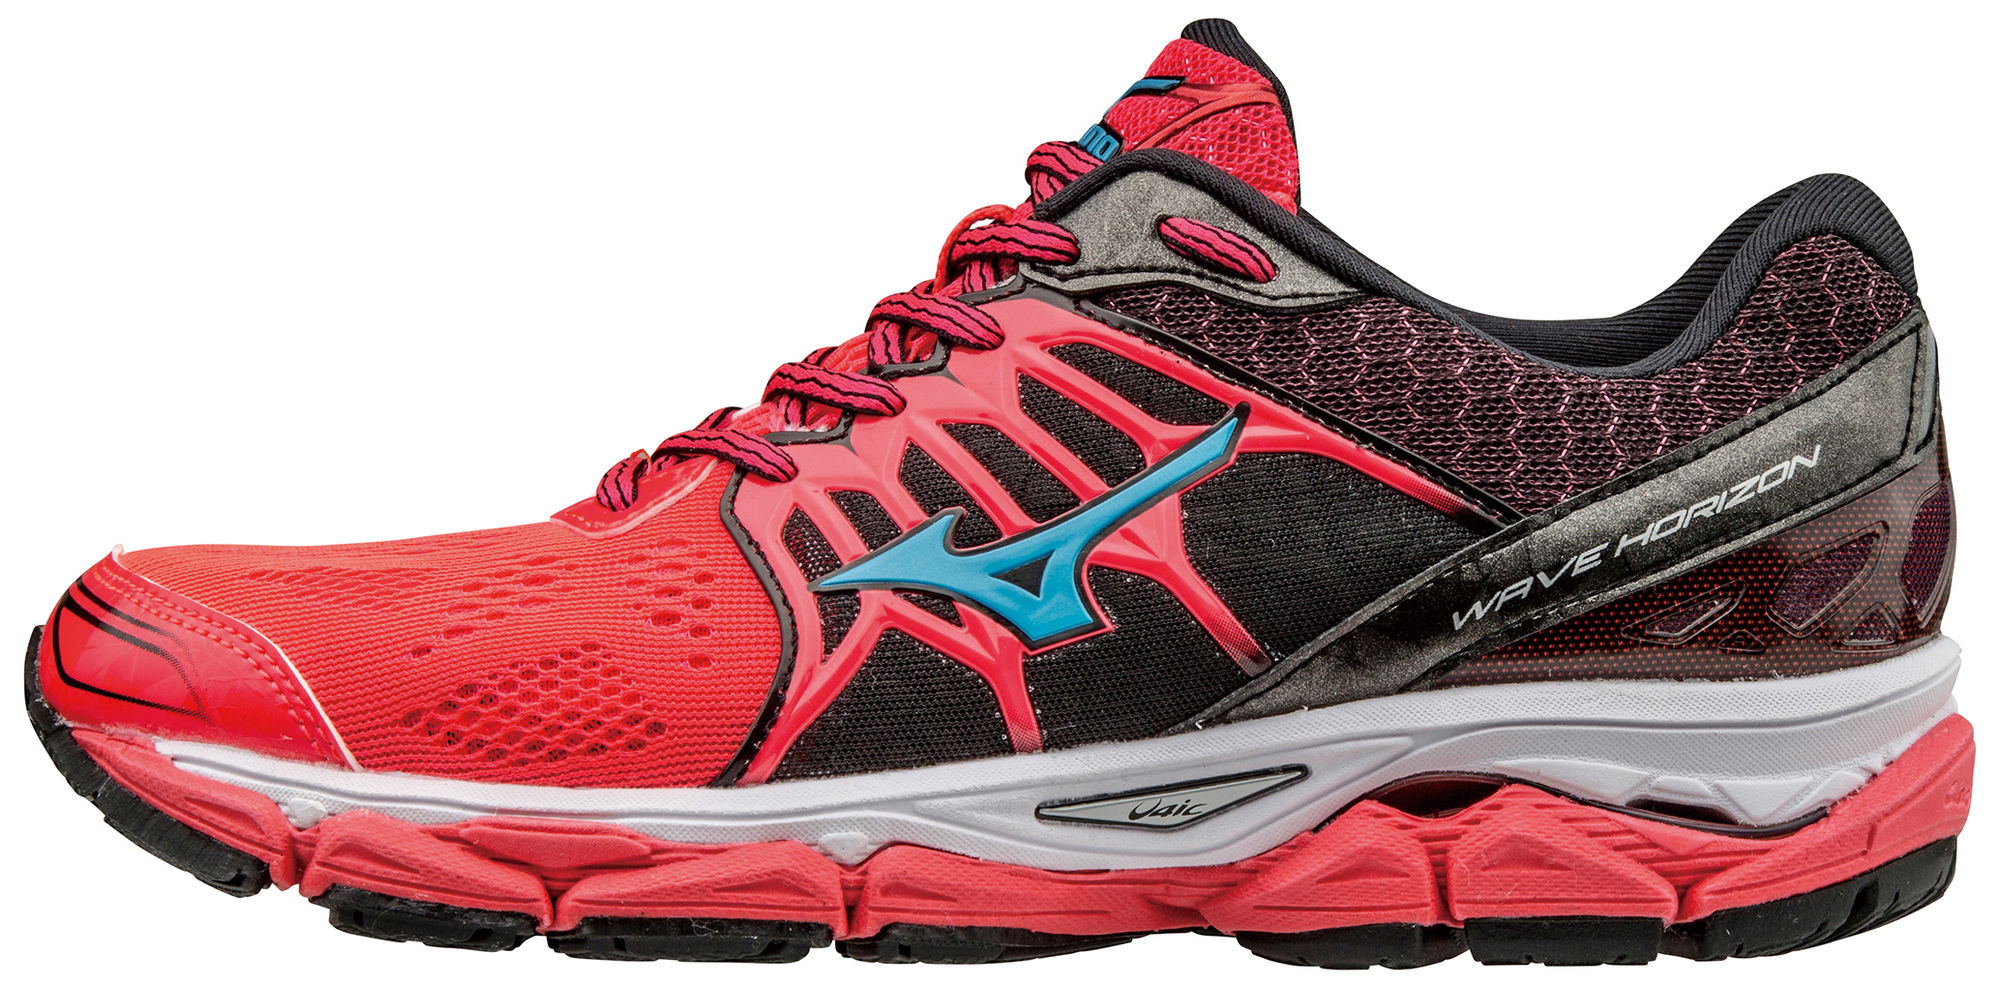 Mizuno Lady Wave Horizon in Pink